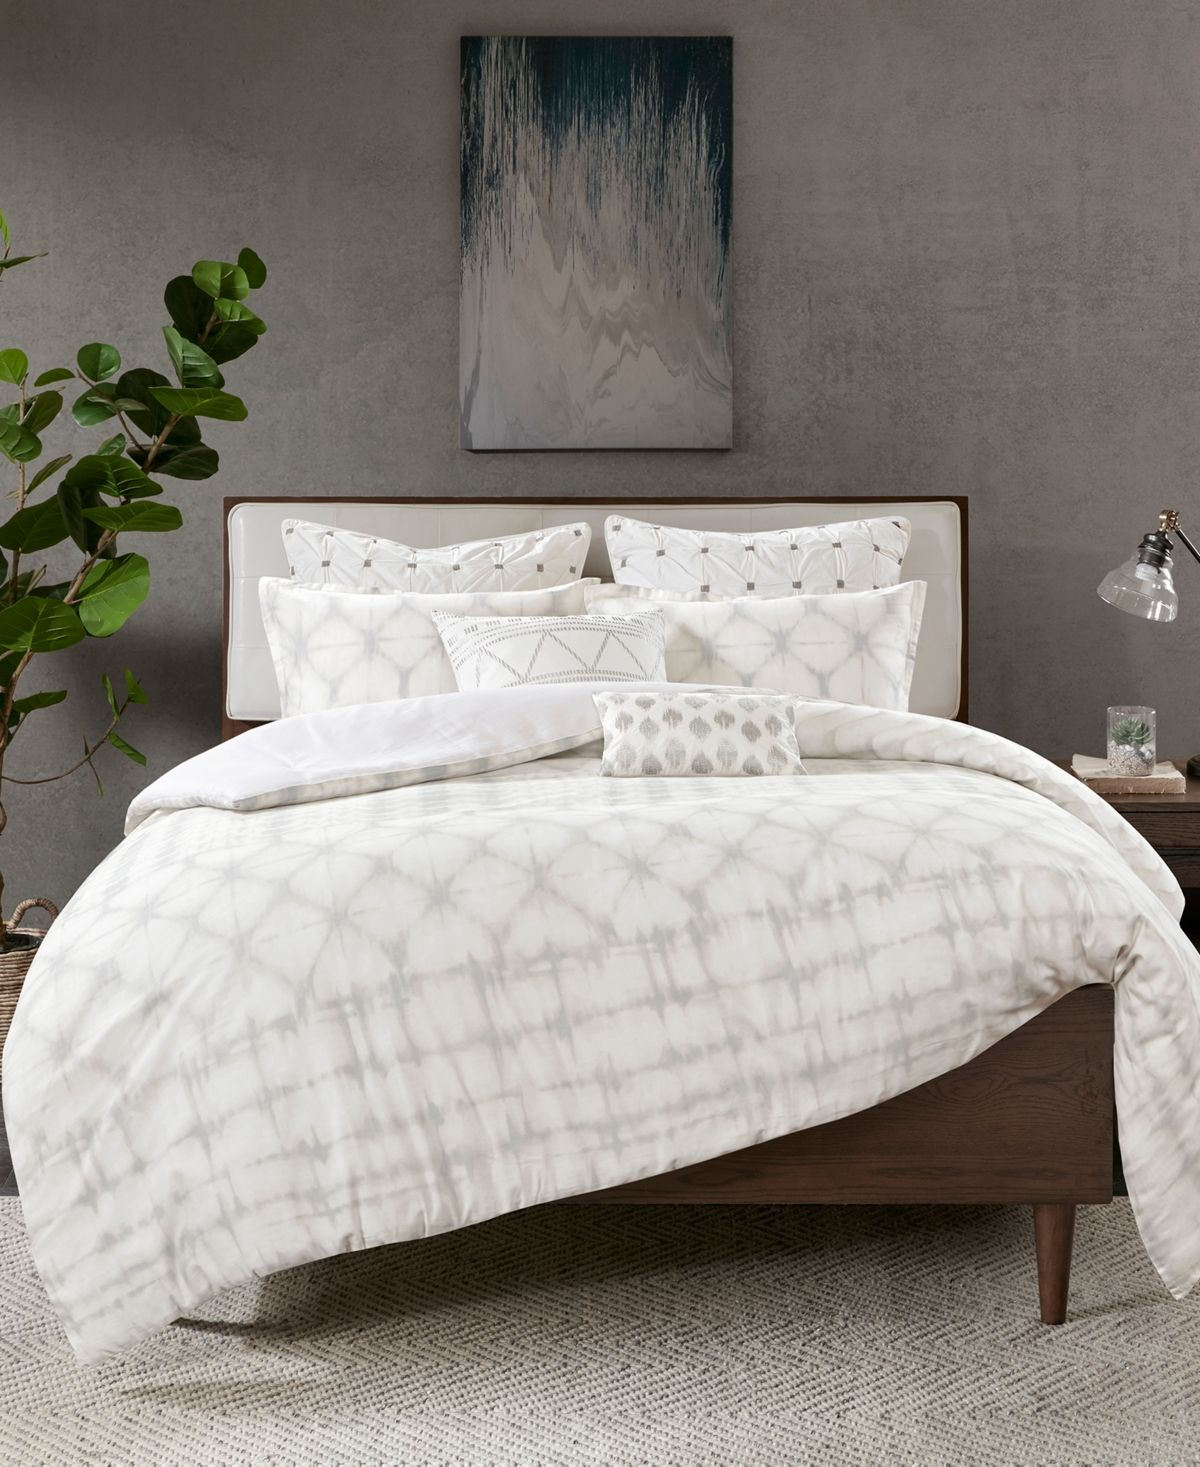 Ink Ivy Fiji 3 Pc Full Queen Cotton Duvet Cover Mini Set Reviews Bed In A Bag Bed Bath Macy S Duvet Cover Sets Duvet Covers Bedding Sets